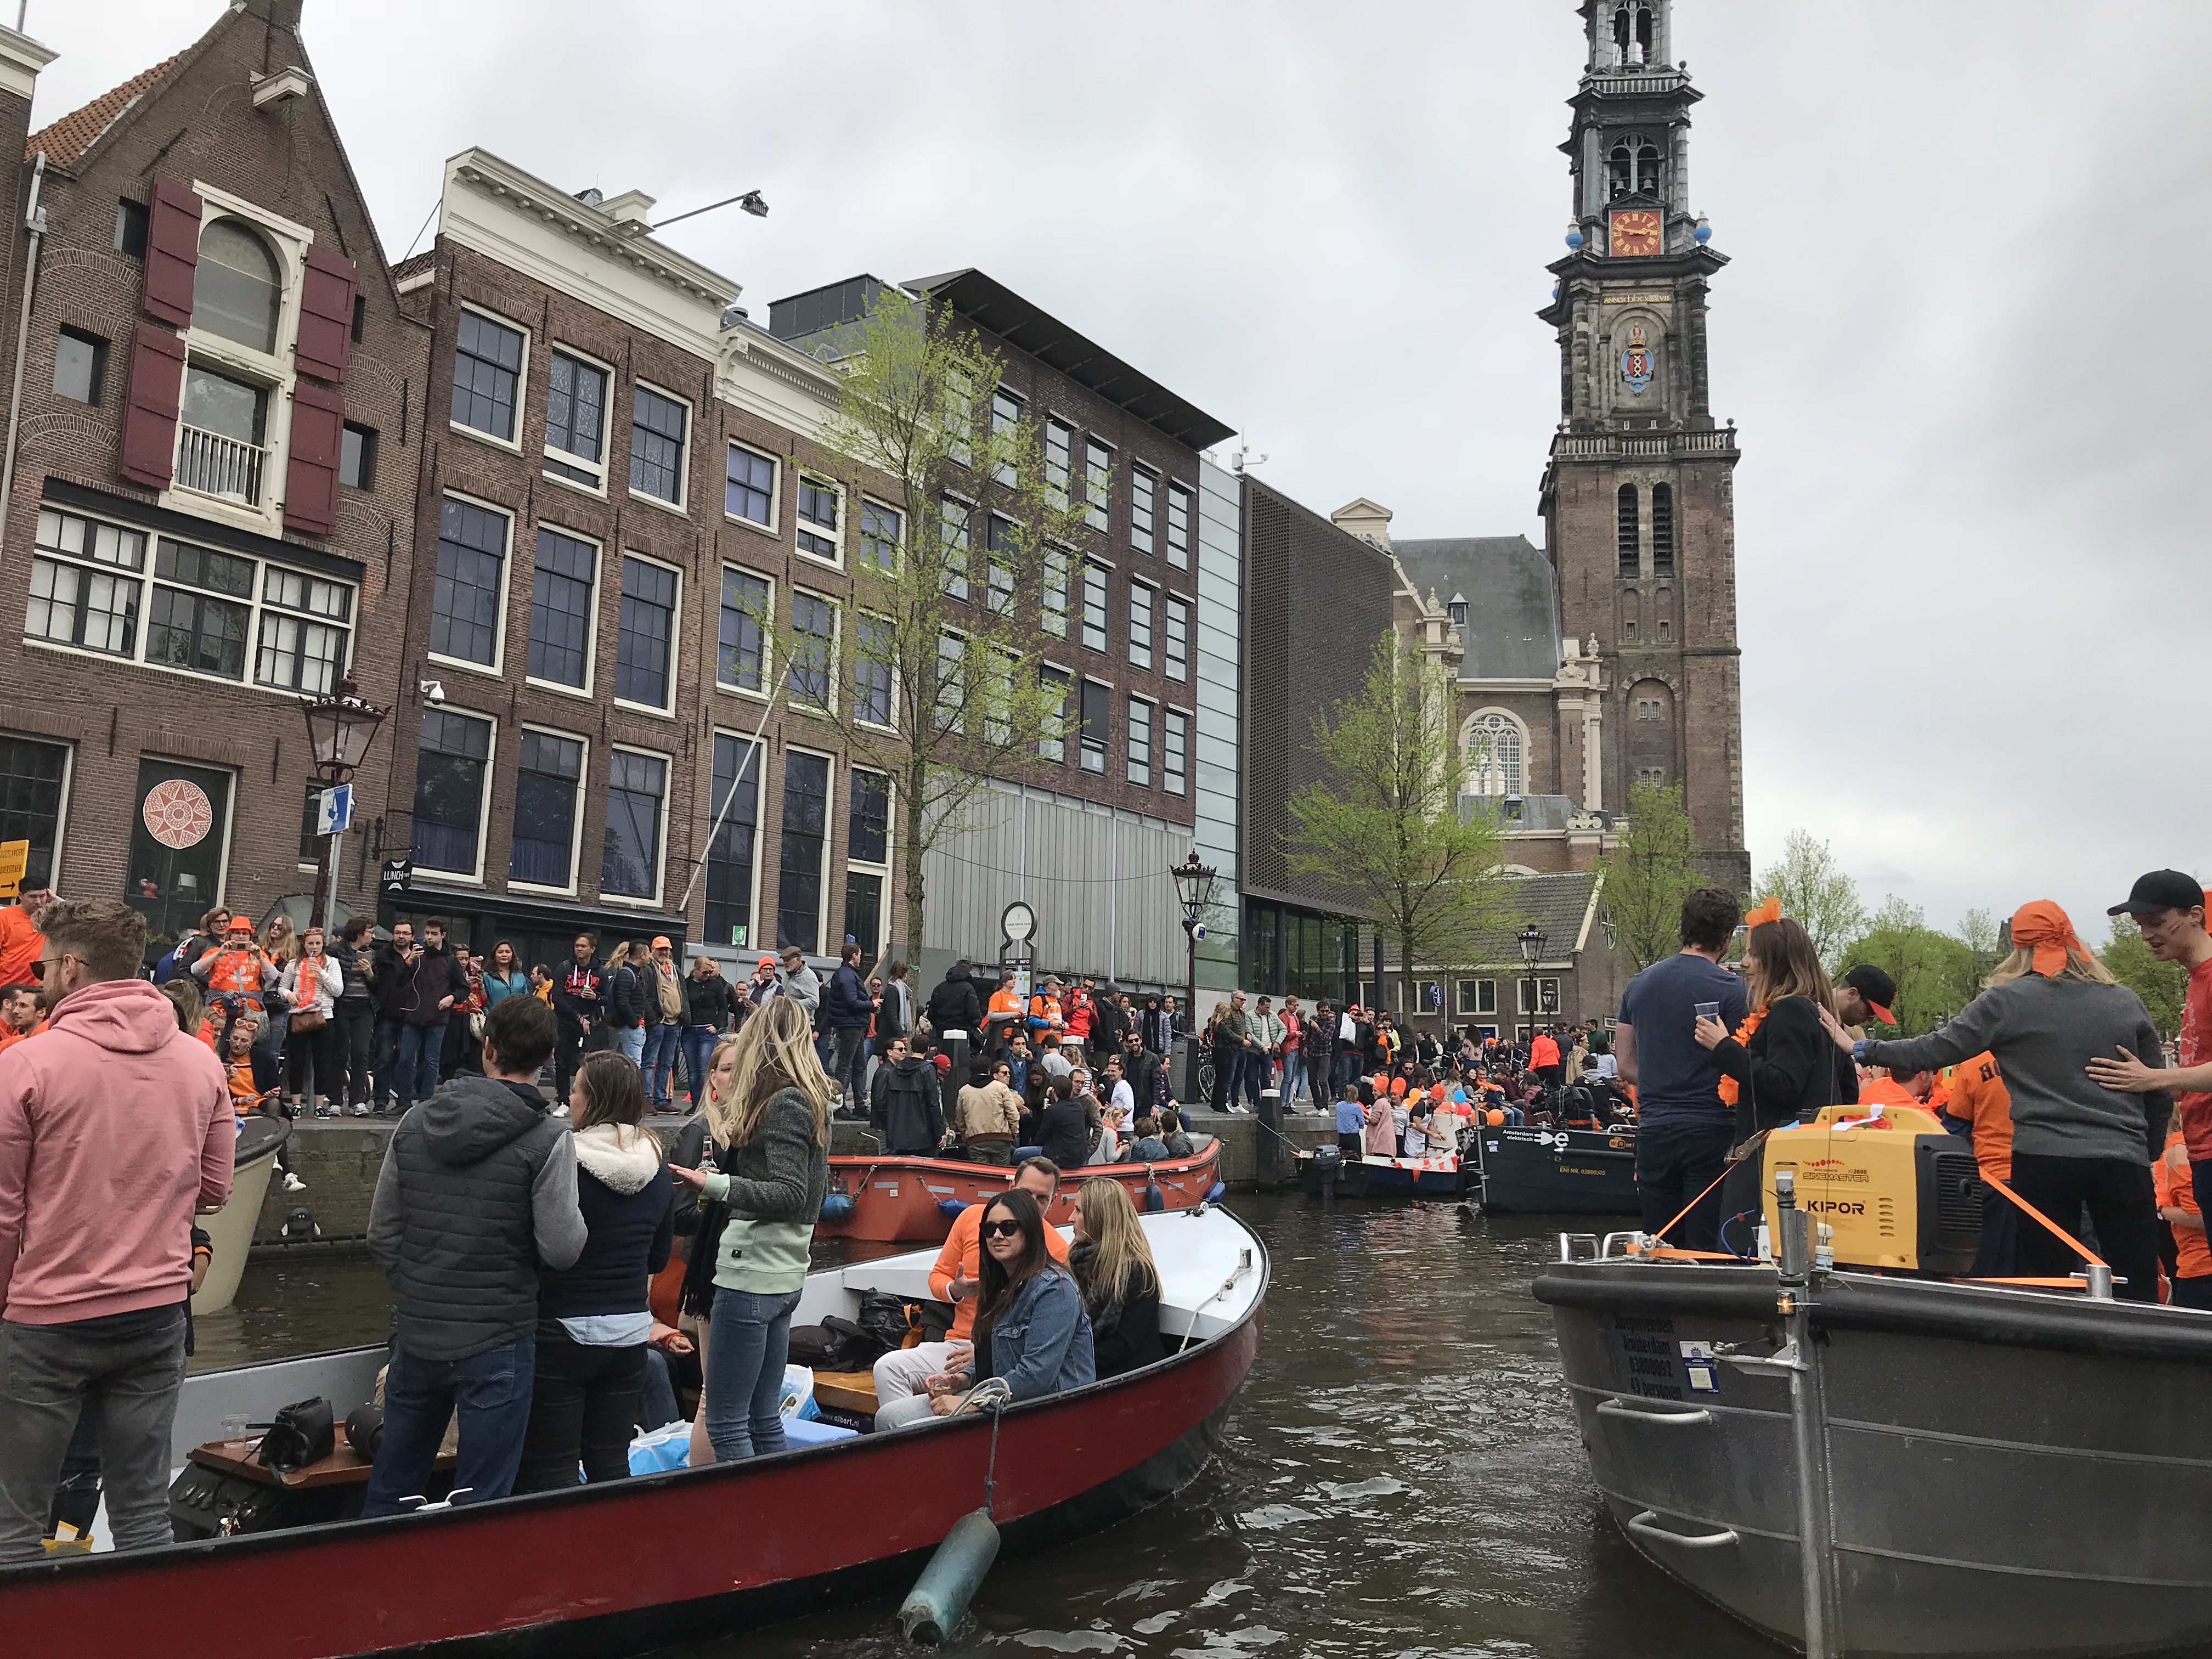 Boat Parties and Orange Balloons, or Celebrating King's Day in Amsterdam